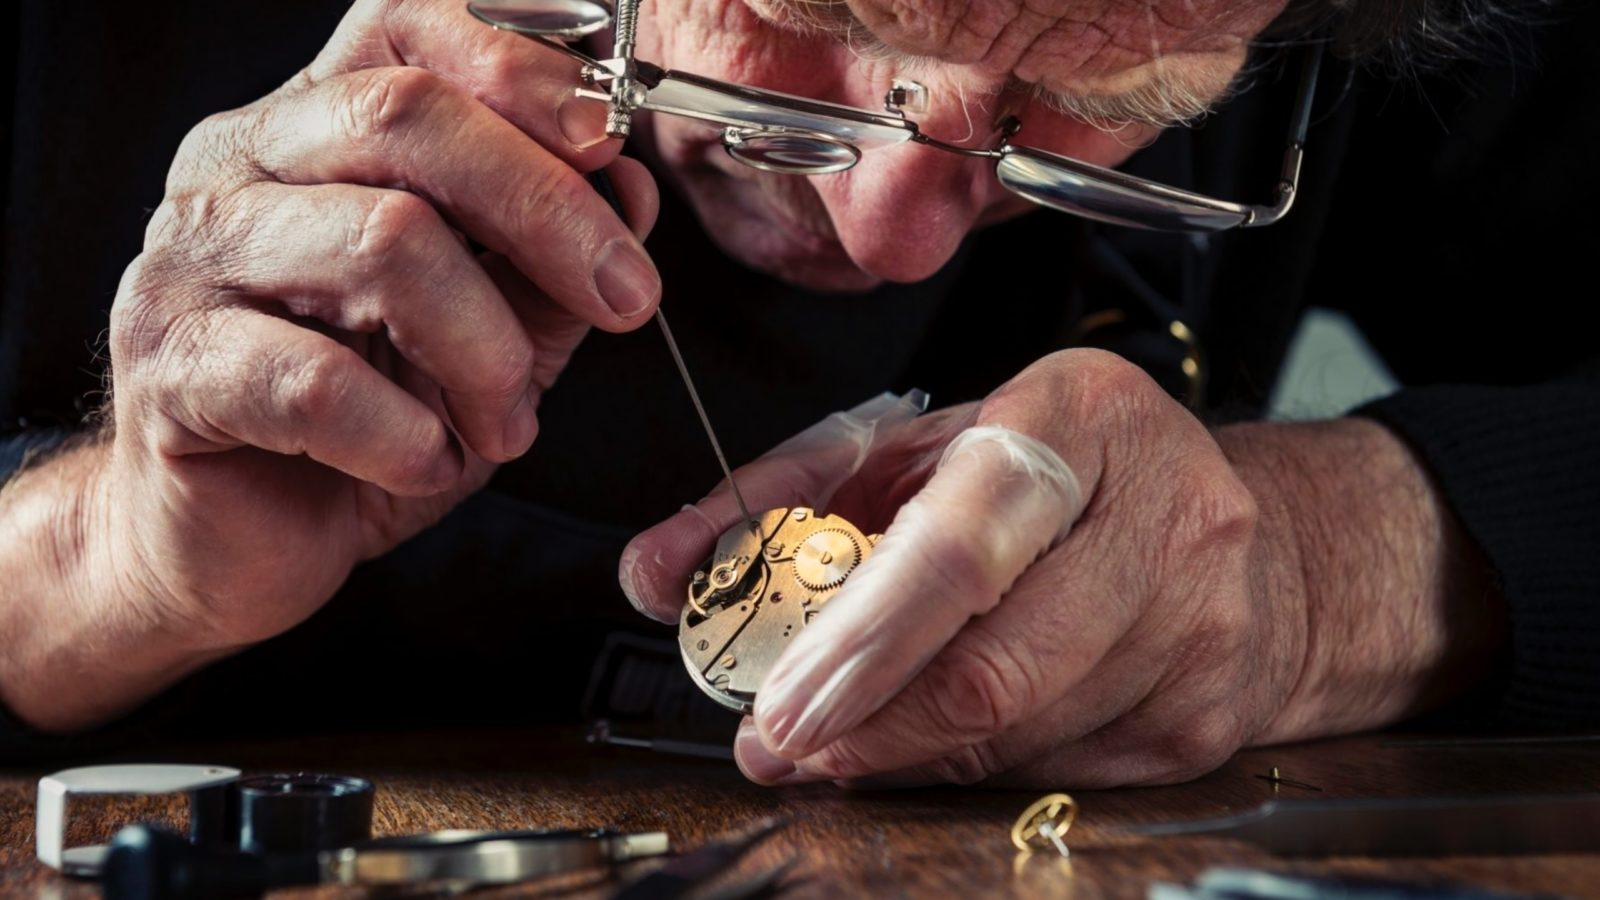 Watchmaking, now a UNESCO heritage status craft